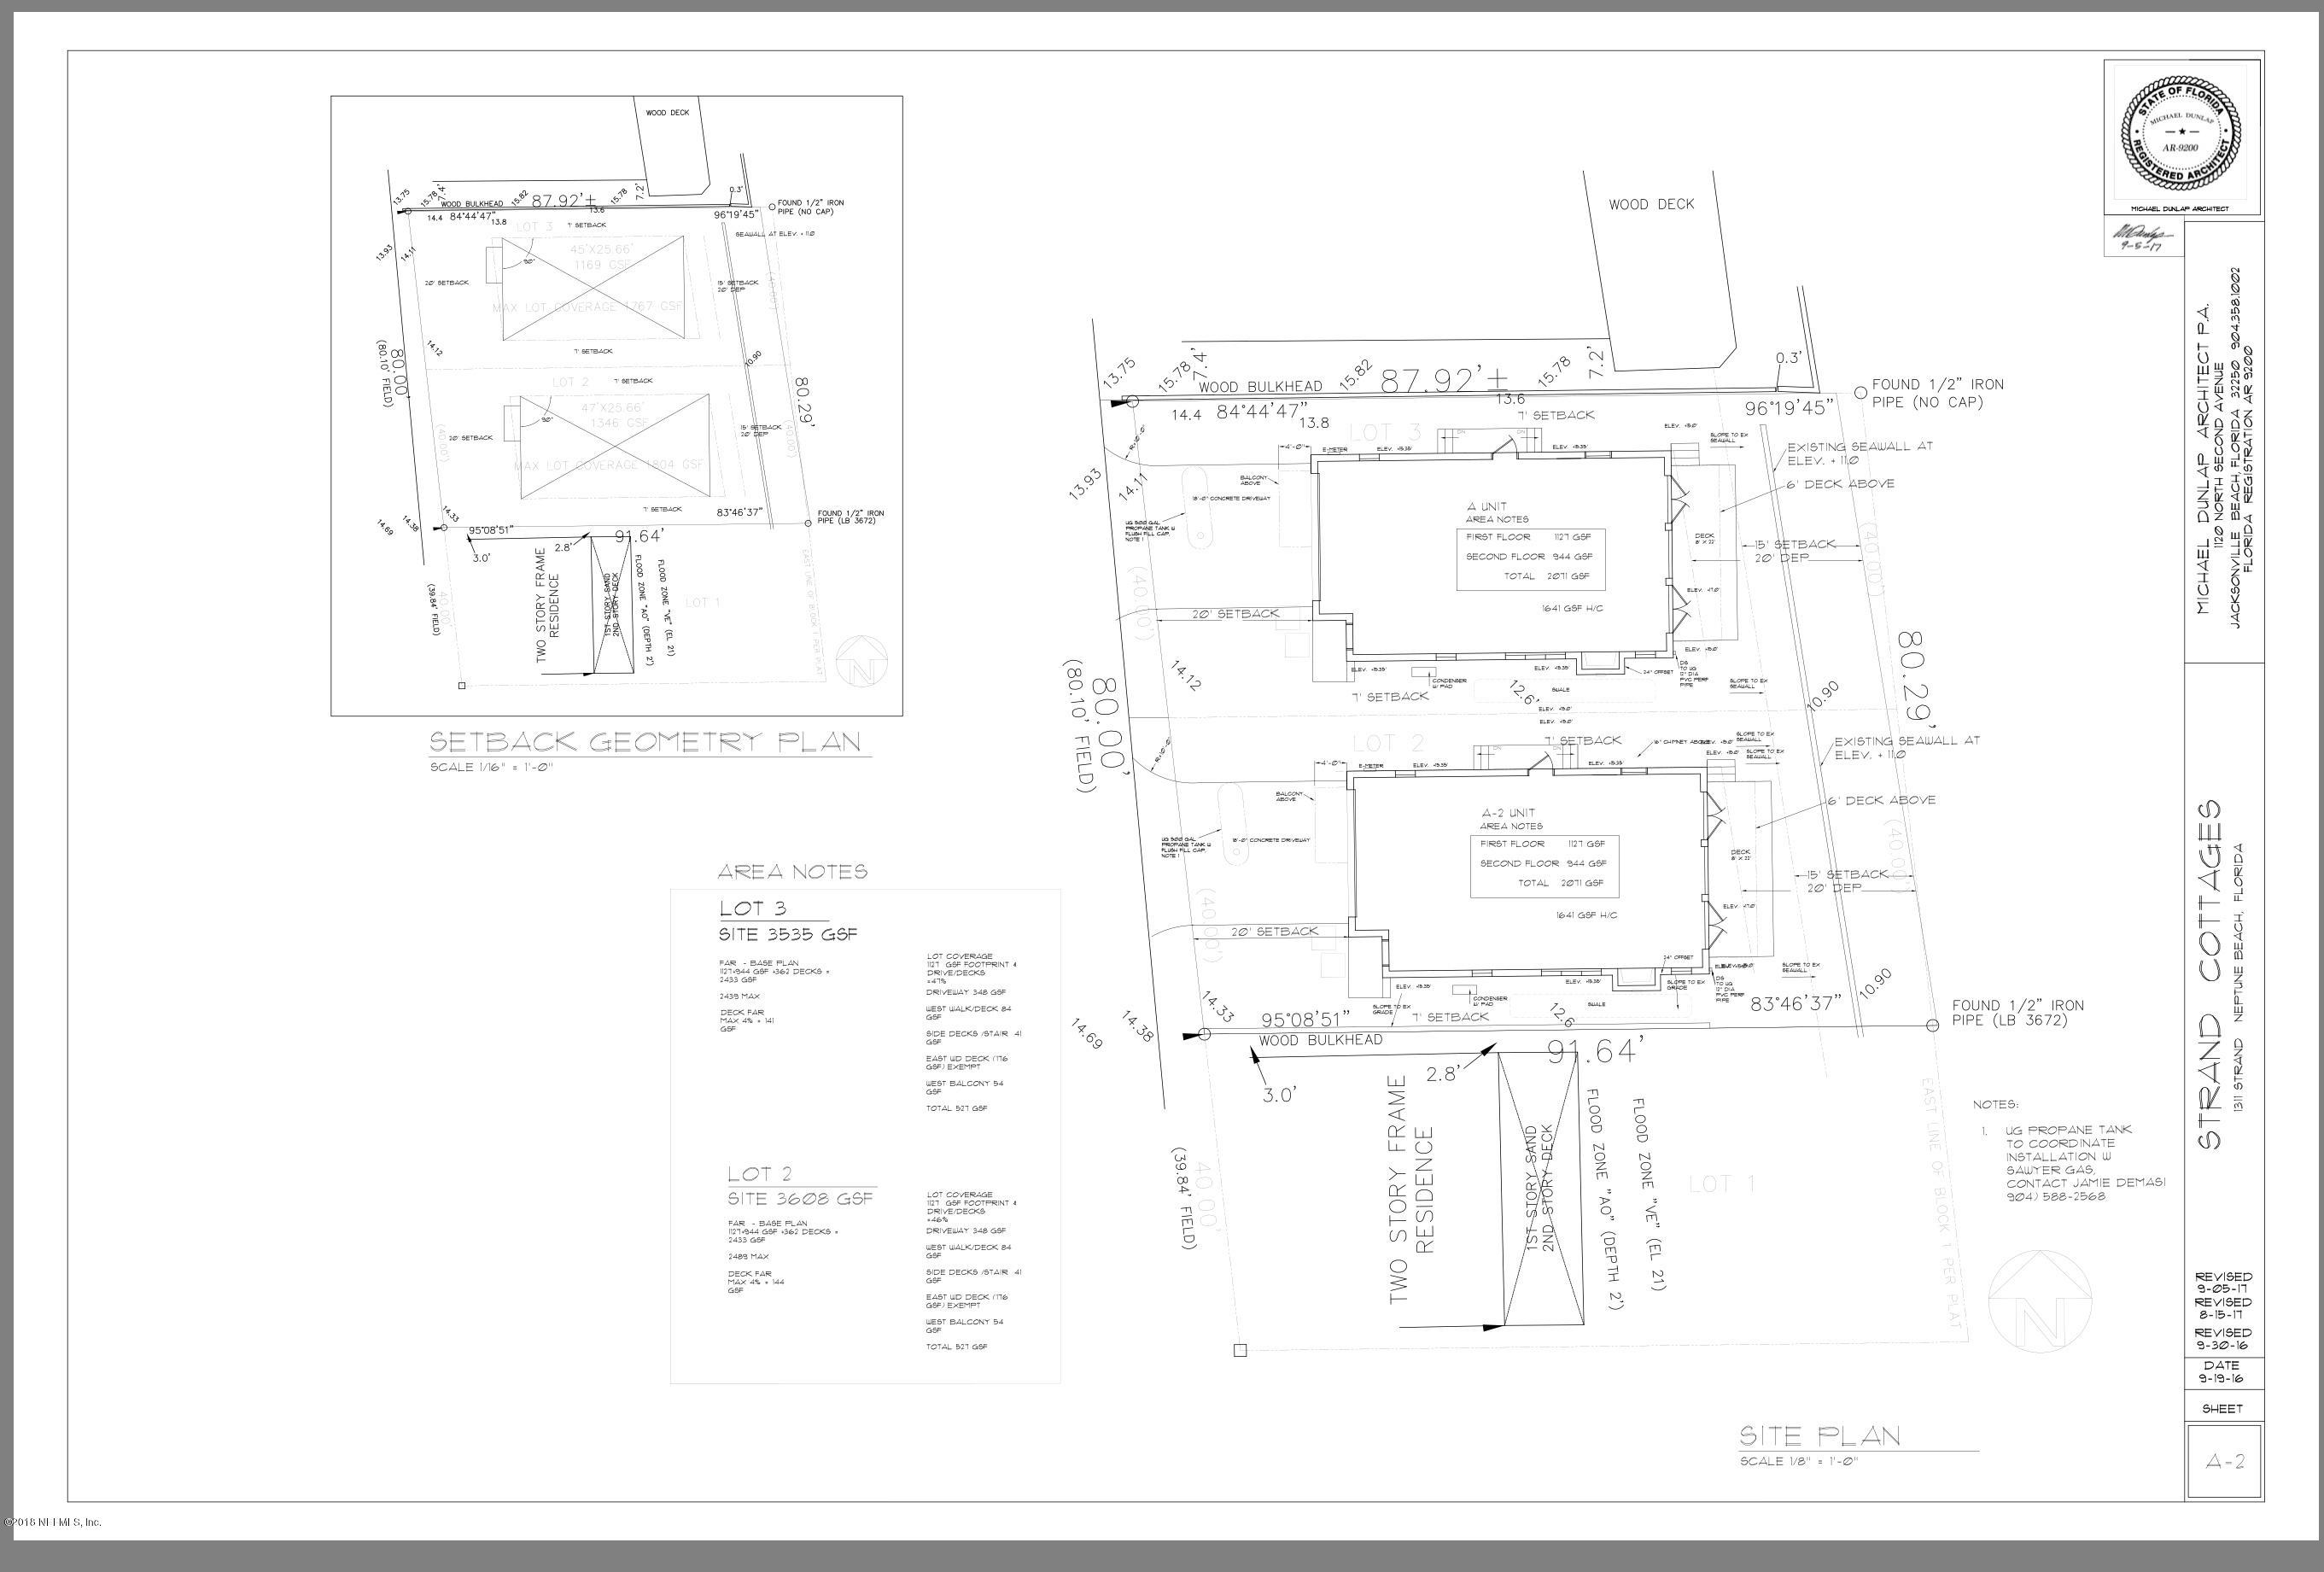 Search Kellar Realty Propane Tank Schematic Property Description Now Offering The Strand Cottages Brand New Oceanfront Home Currently Under Construction 1312 St Also Available Mls